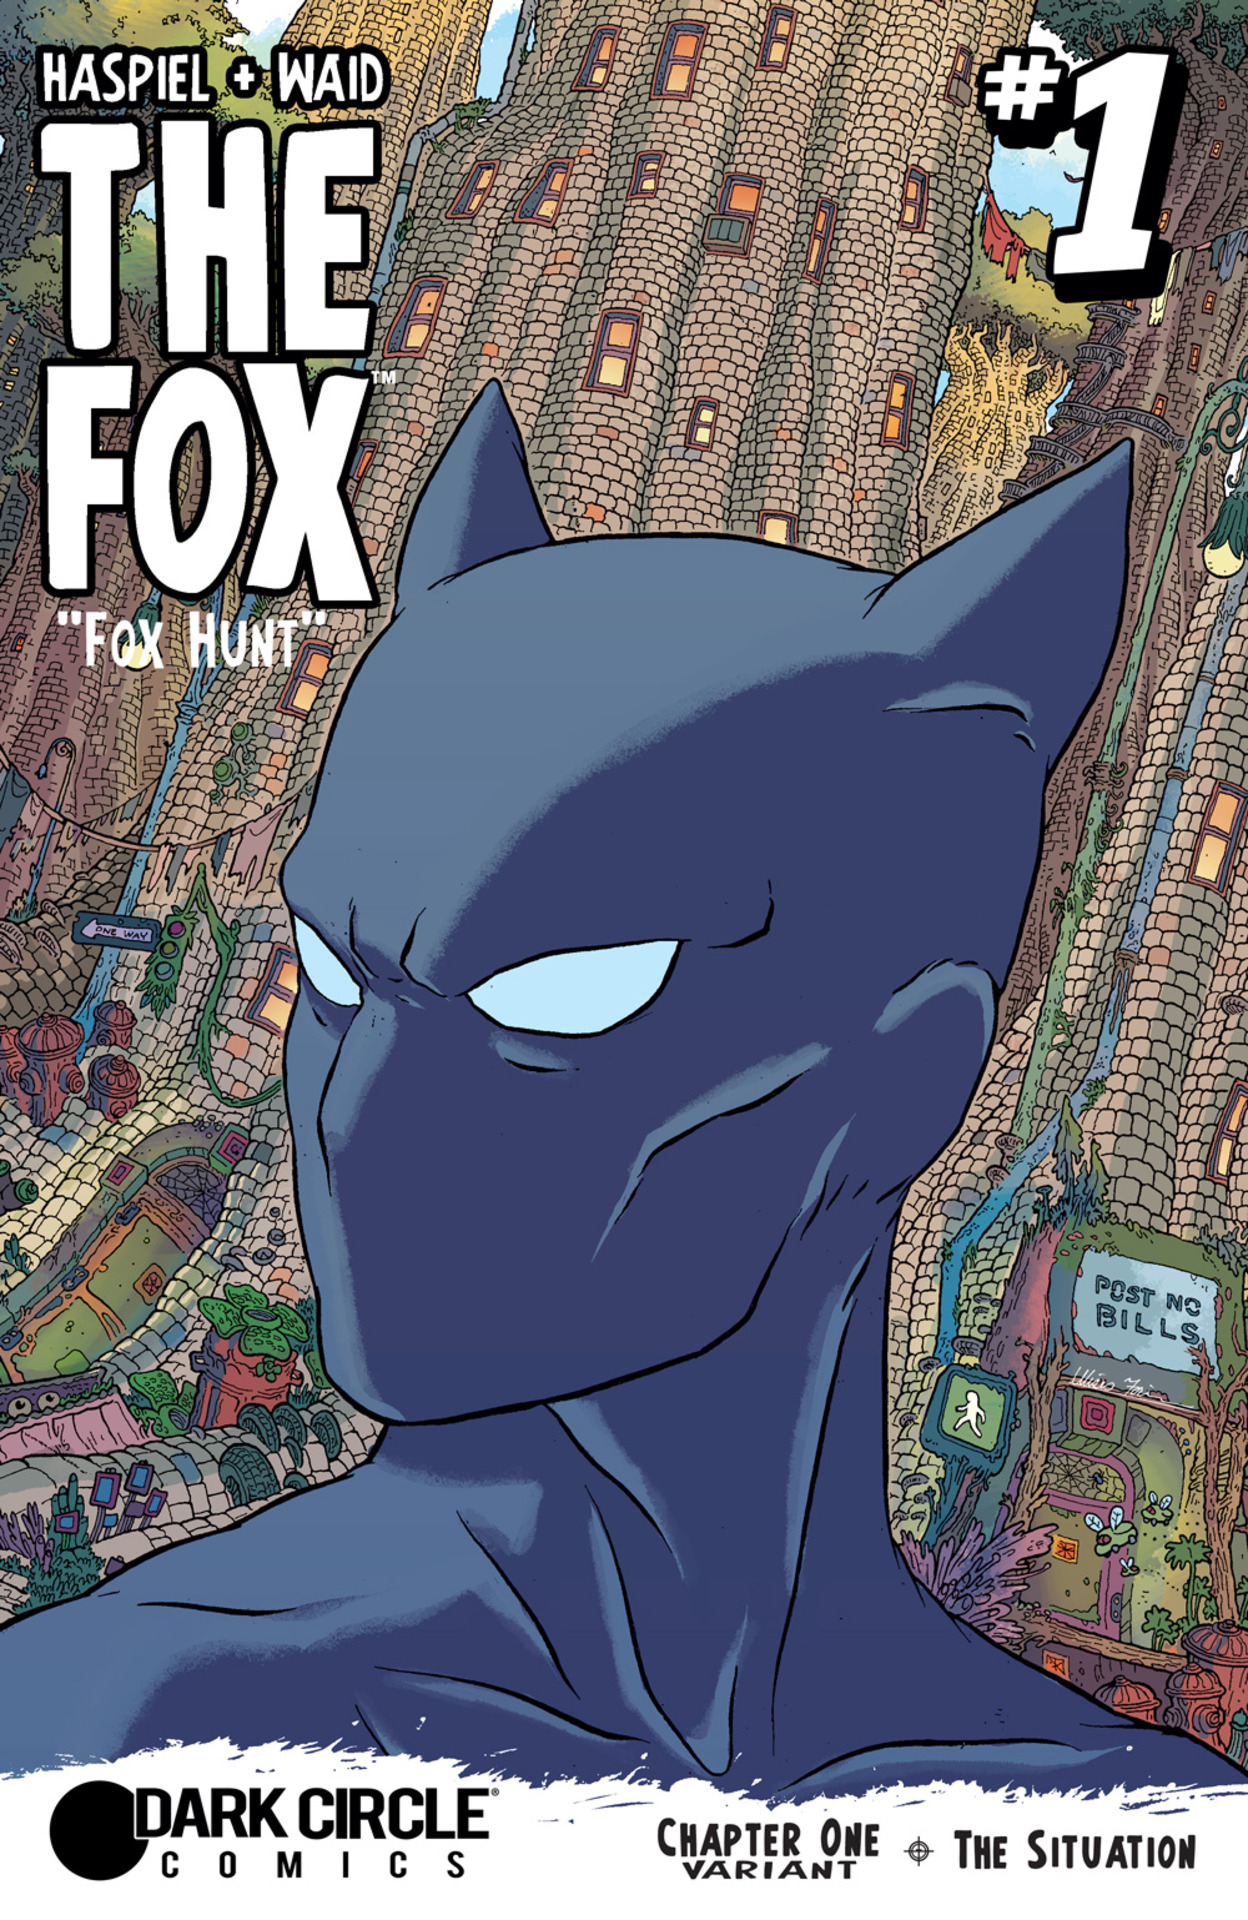 Cover by Ulises Farinas and Ryan Hill